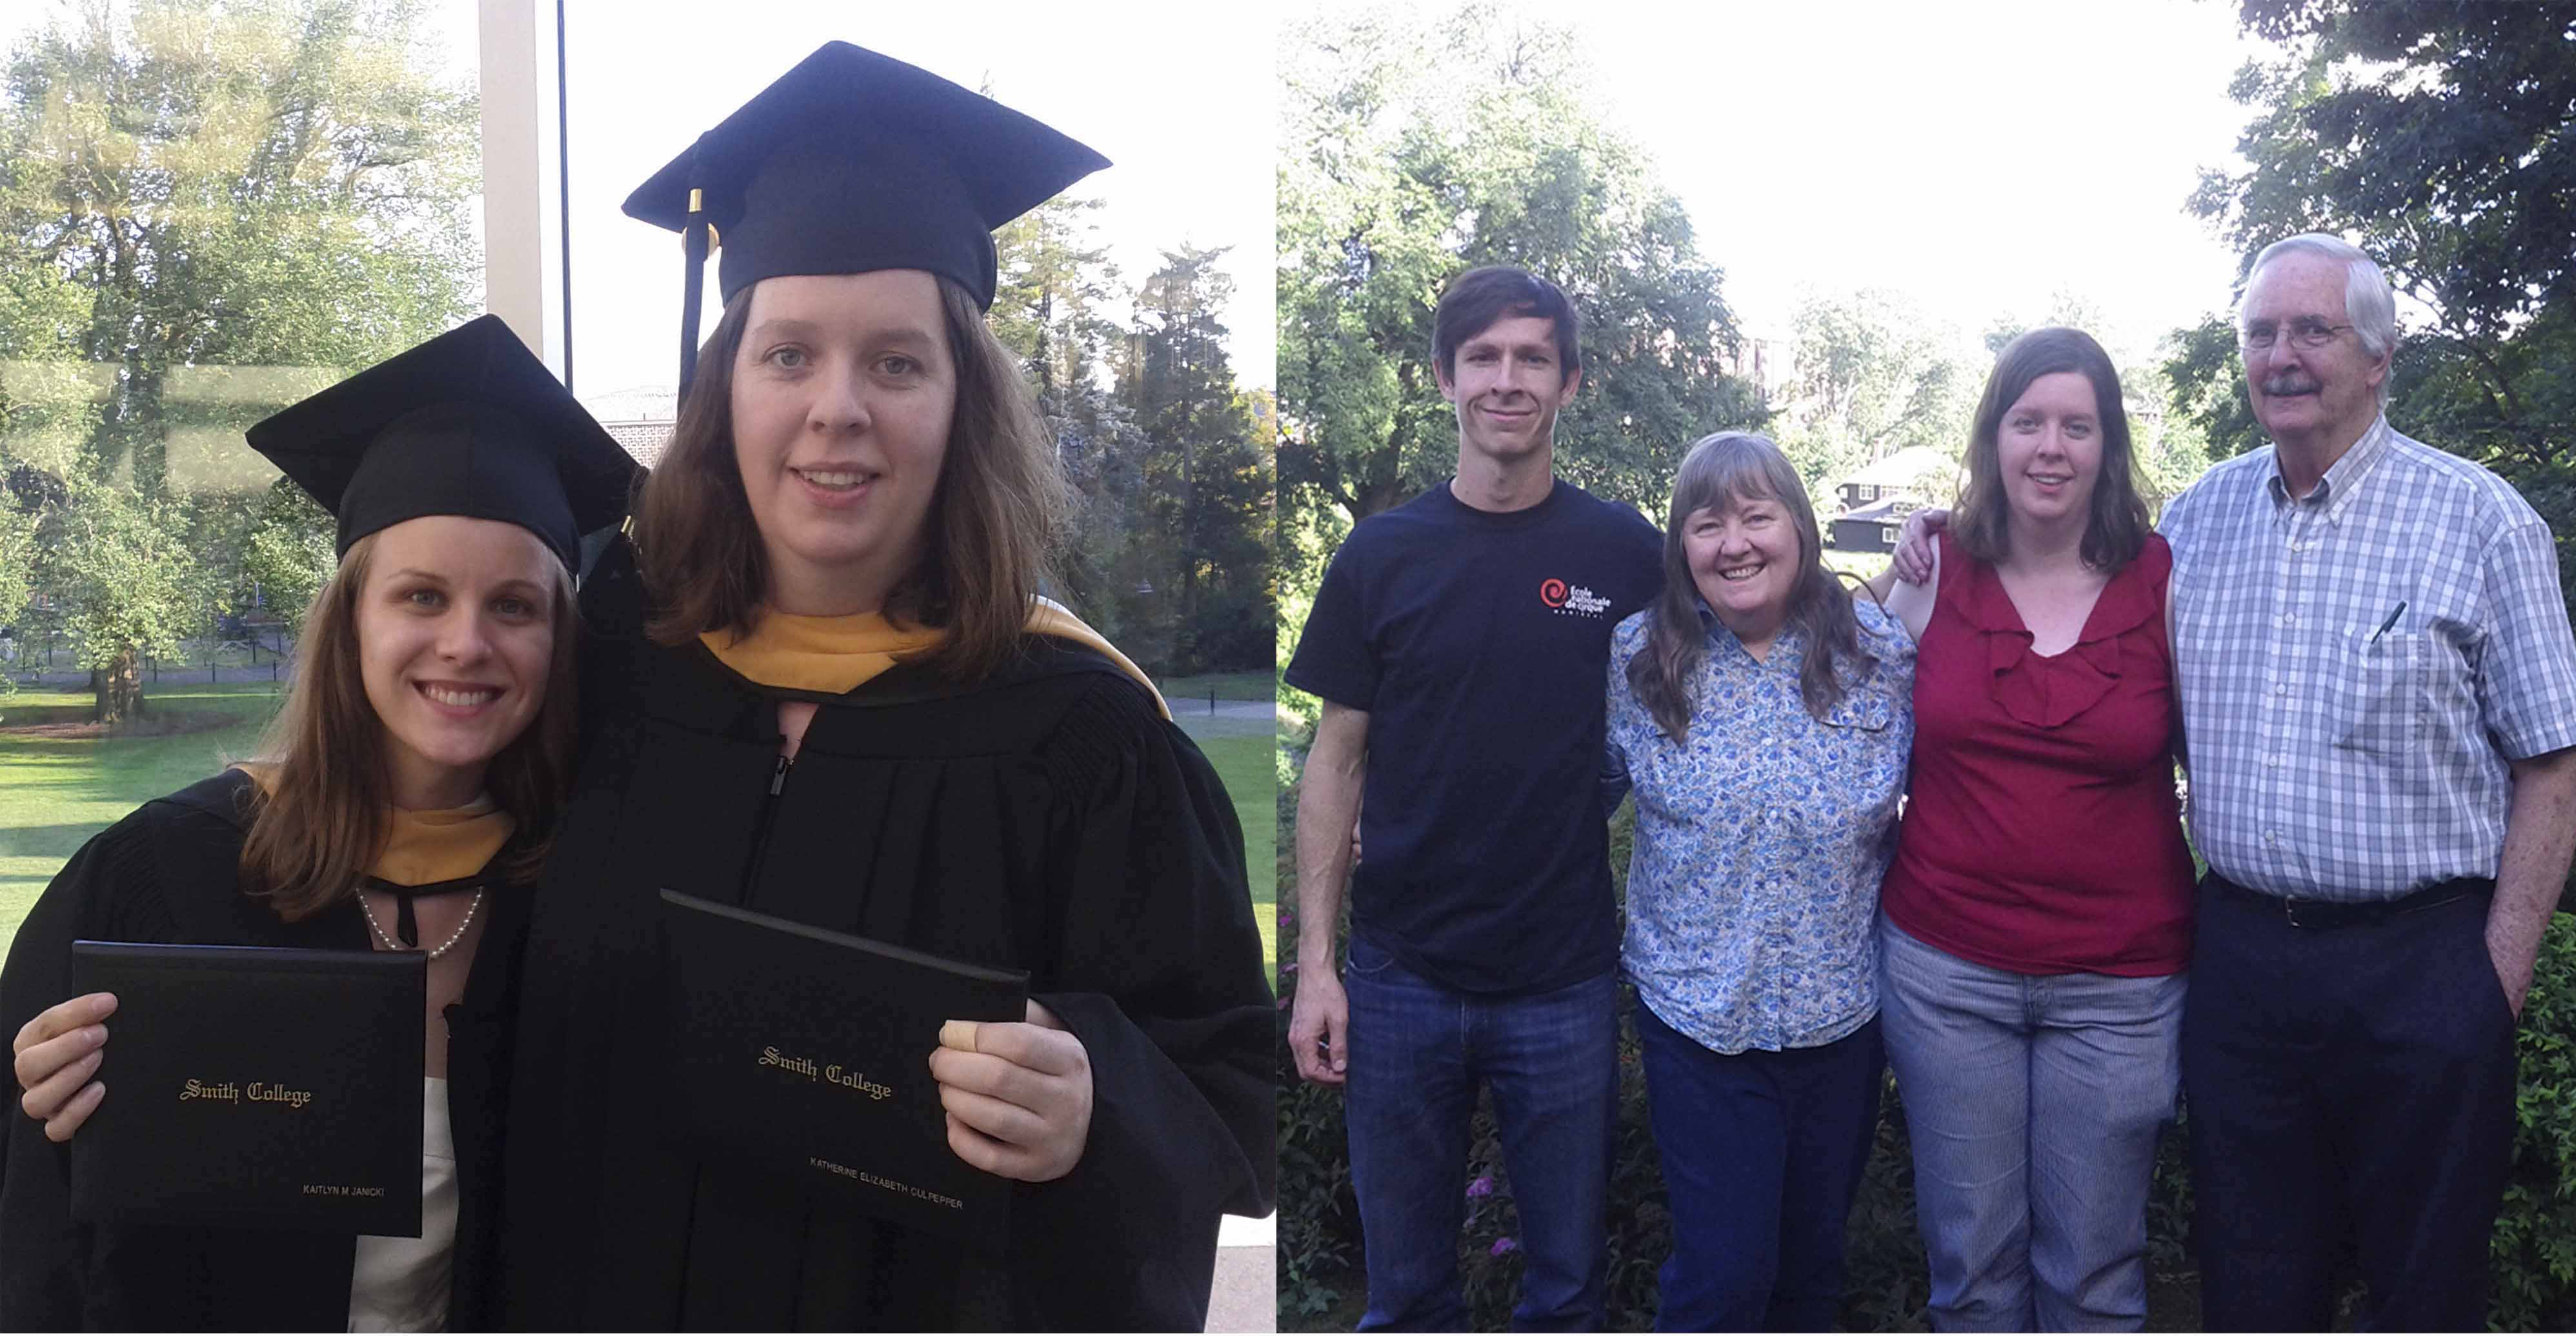 Katie's MSW Smith Graduation 15 August 2015 collage 300dpi